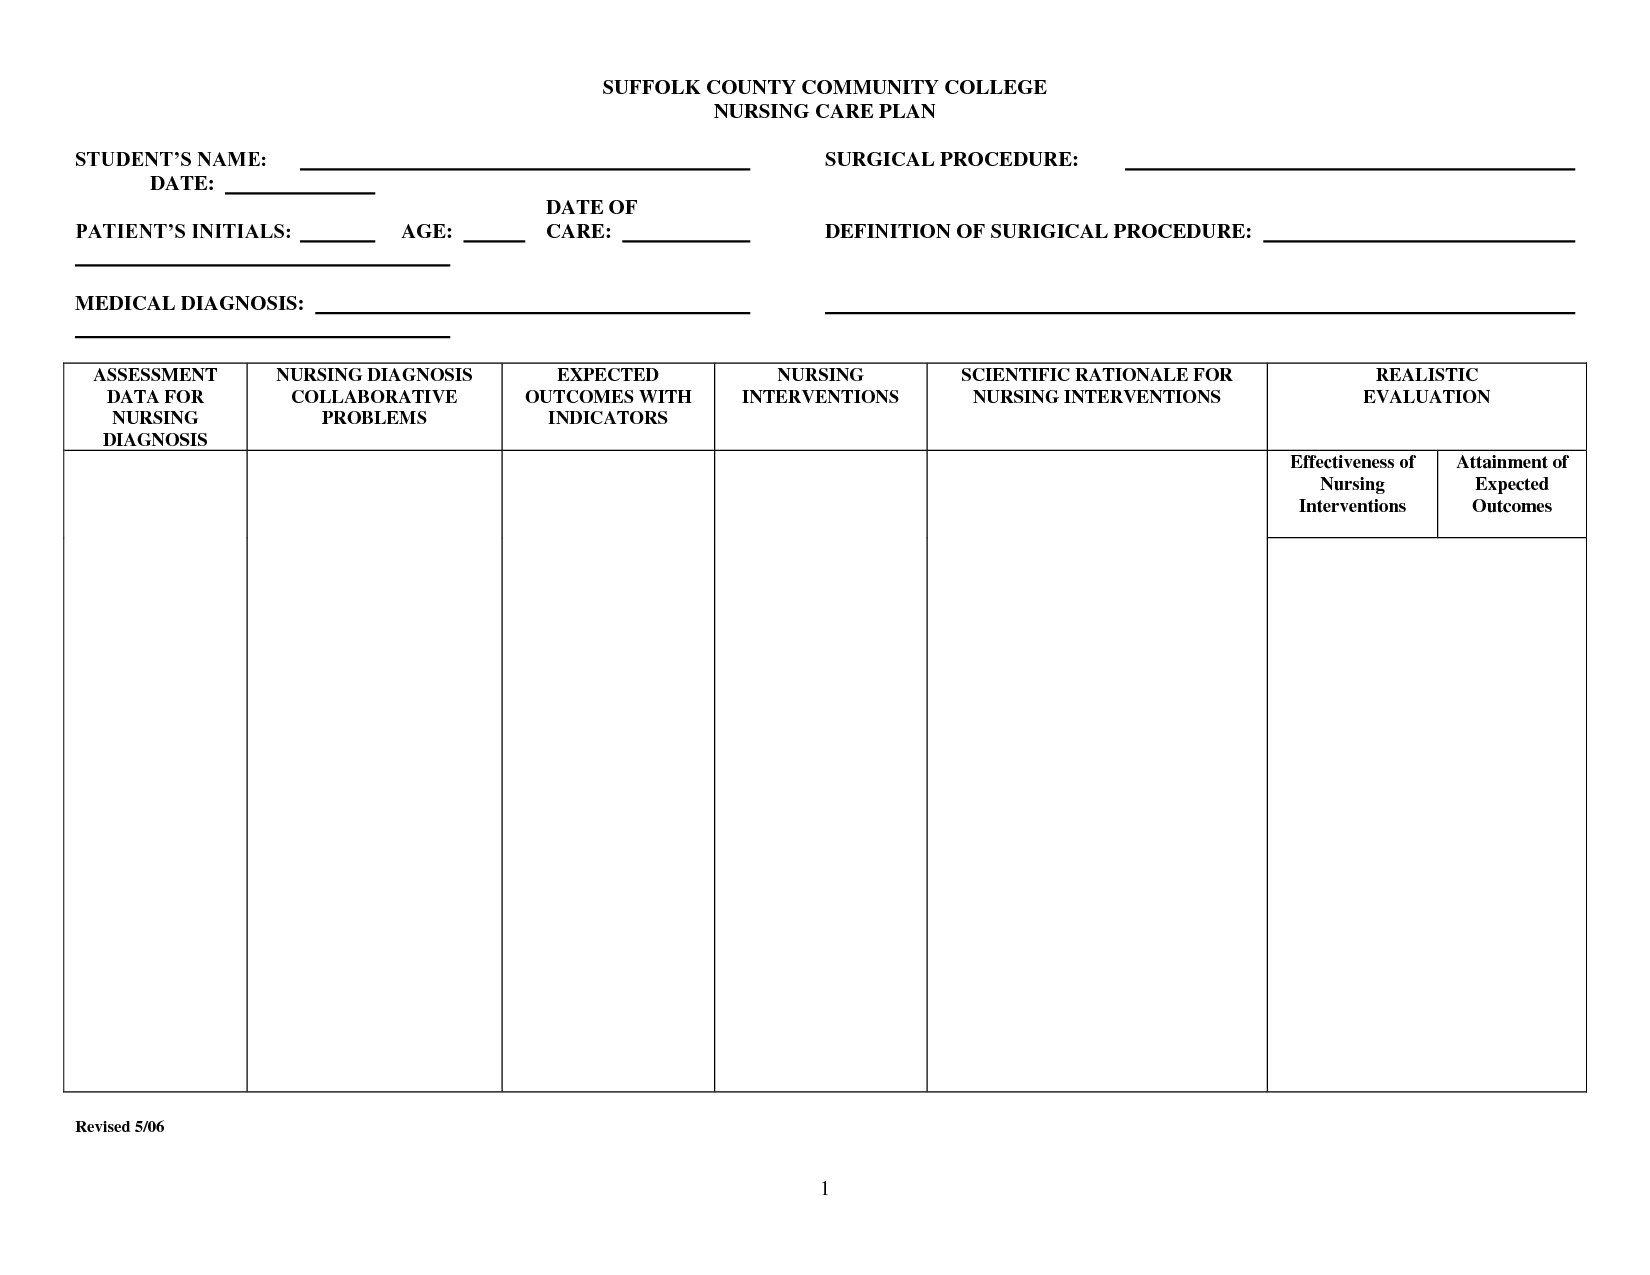 nursing care plan templates blank Dorit.mercatodos.co